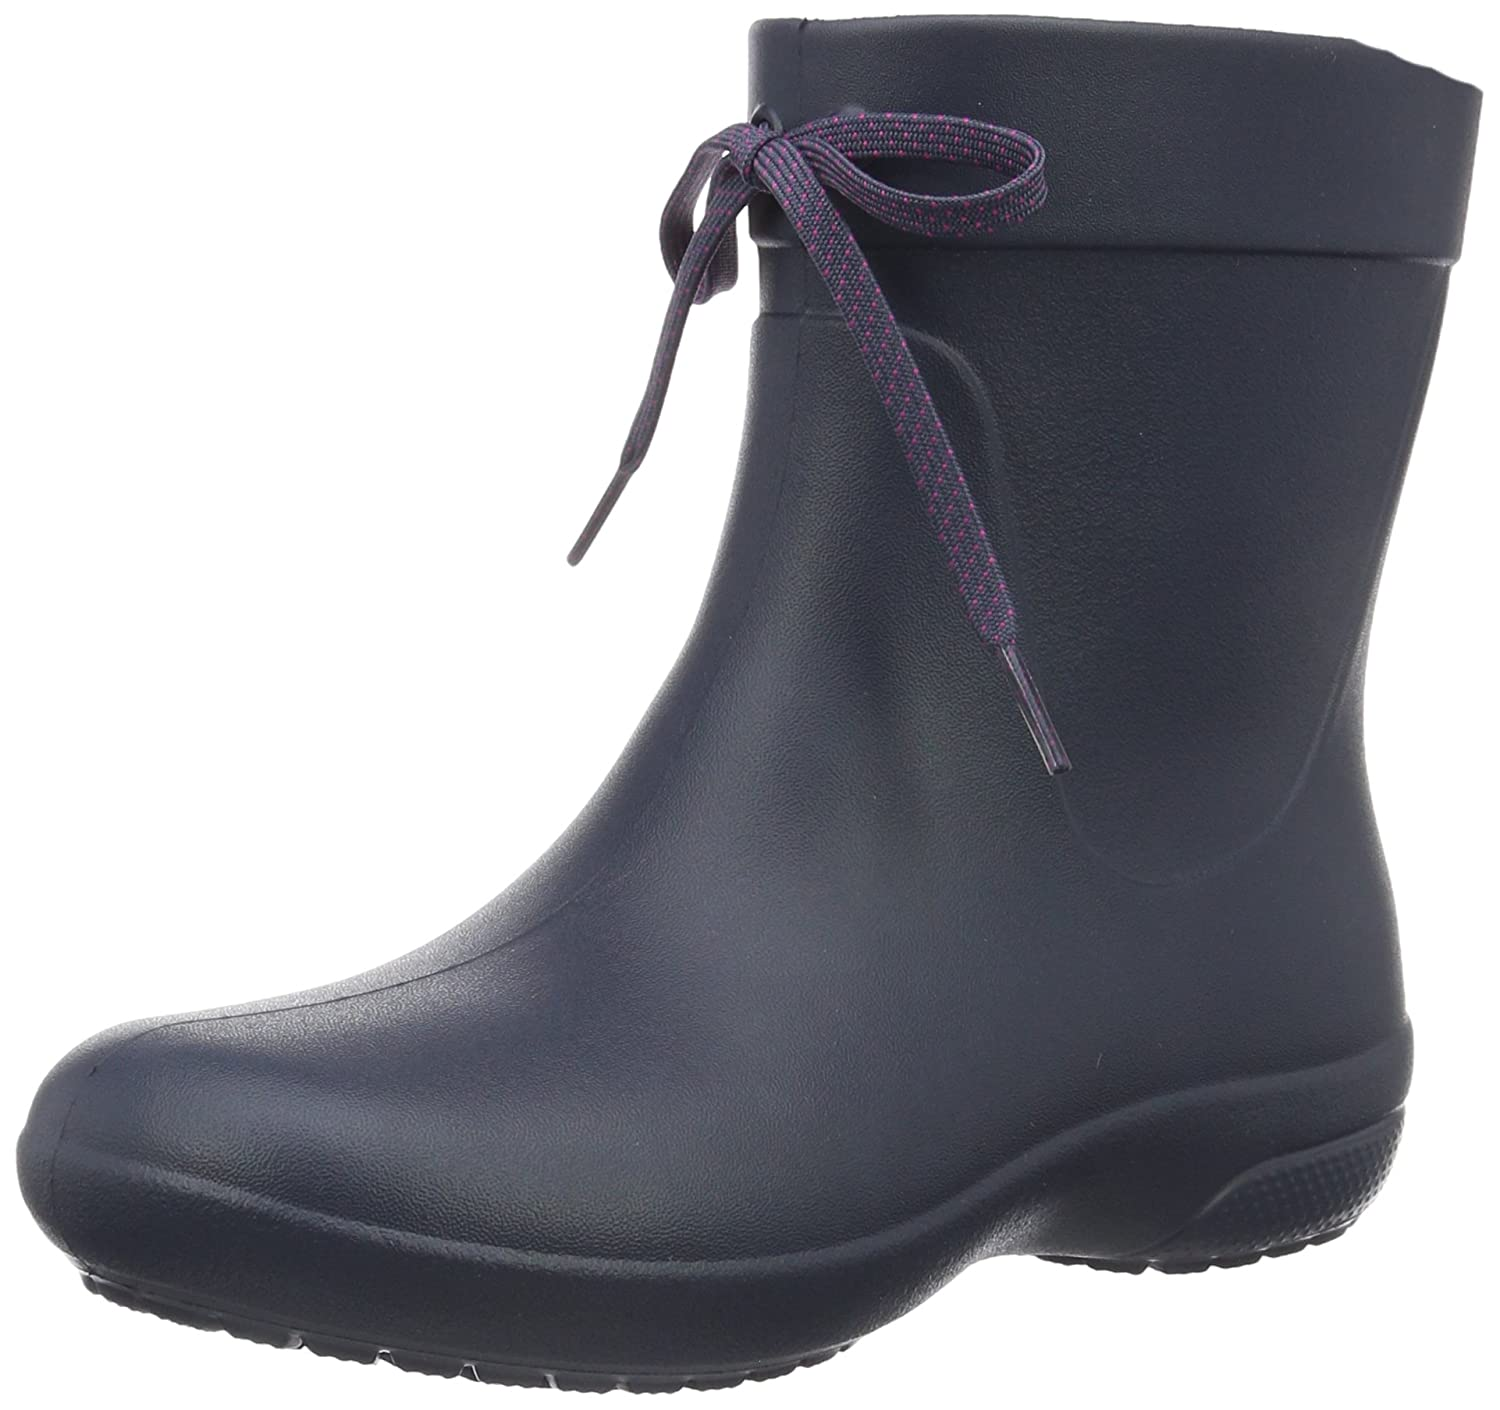 Crocs Freesail Femme (Navy) Shorty Rain Boots, Bottes Femme Bleu Freesail (Navy) 924572b - conorscully.space